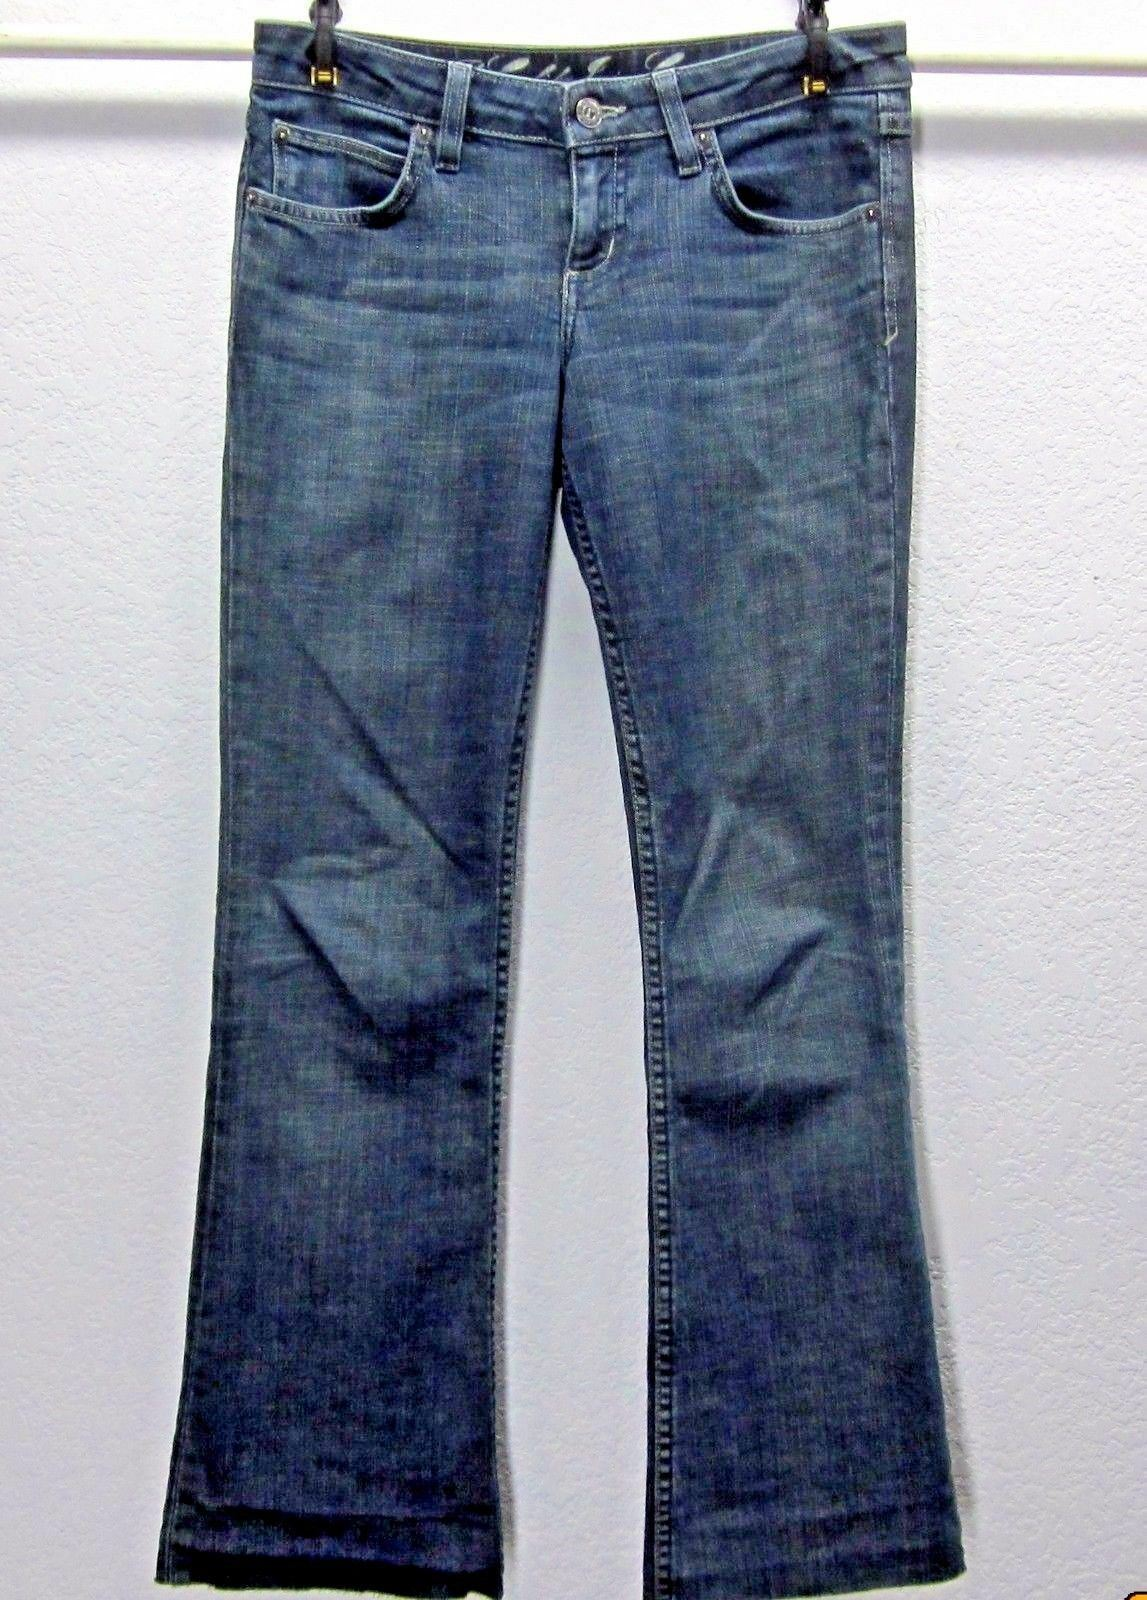 JUICY COUTURE THE CALI WOMEN'S BOOT CUT Sz 26 (29x27) DARK STRETCH BLUE JEANS image 1